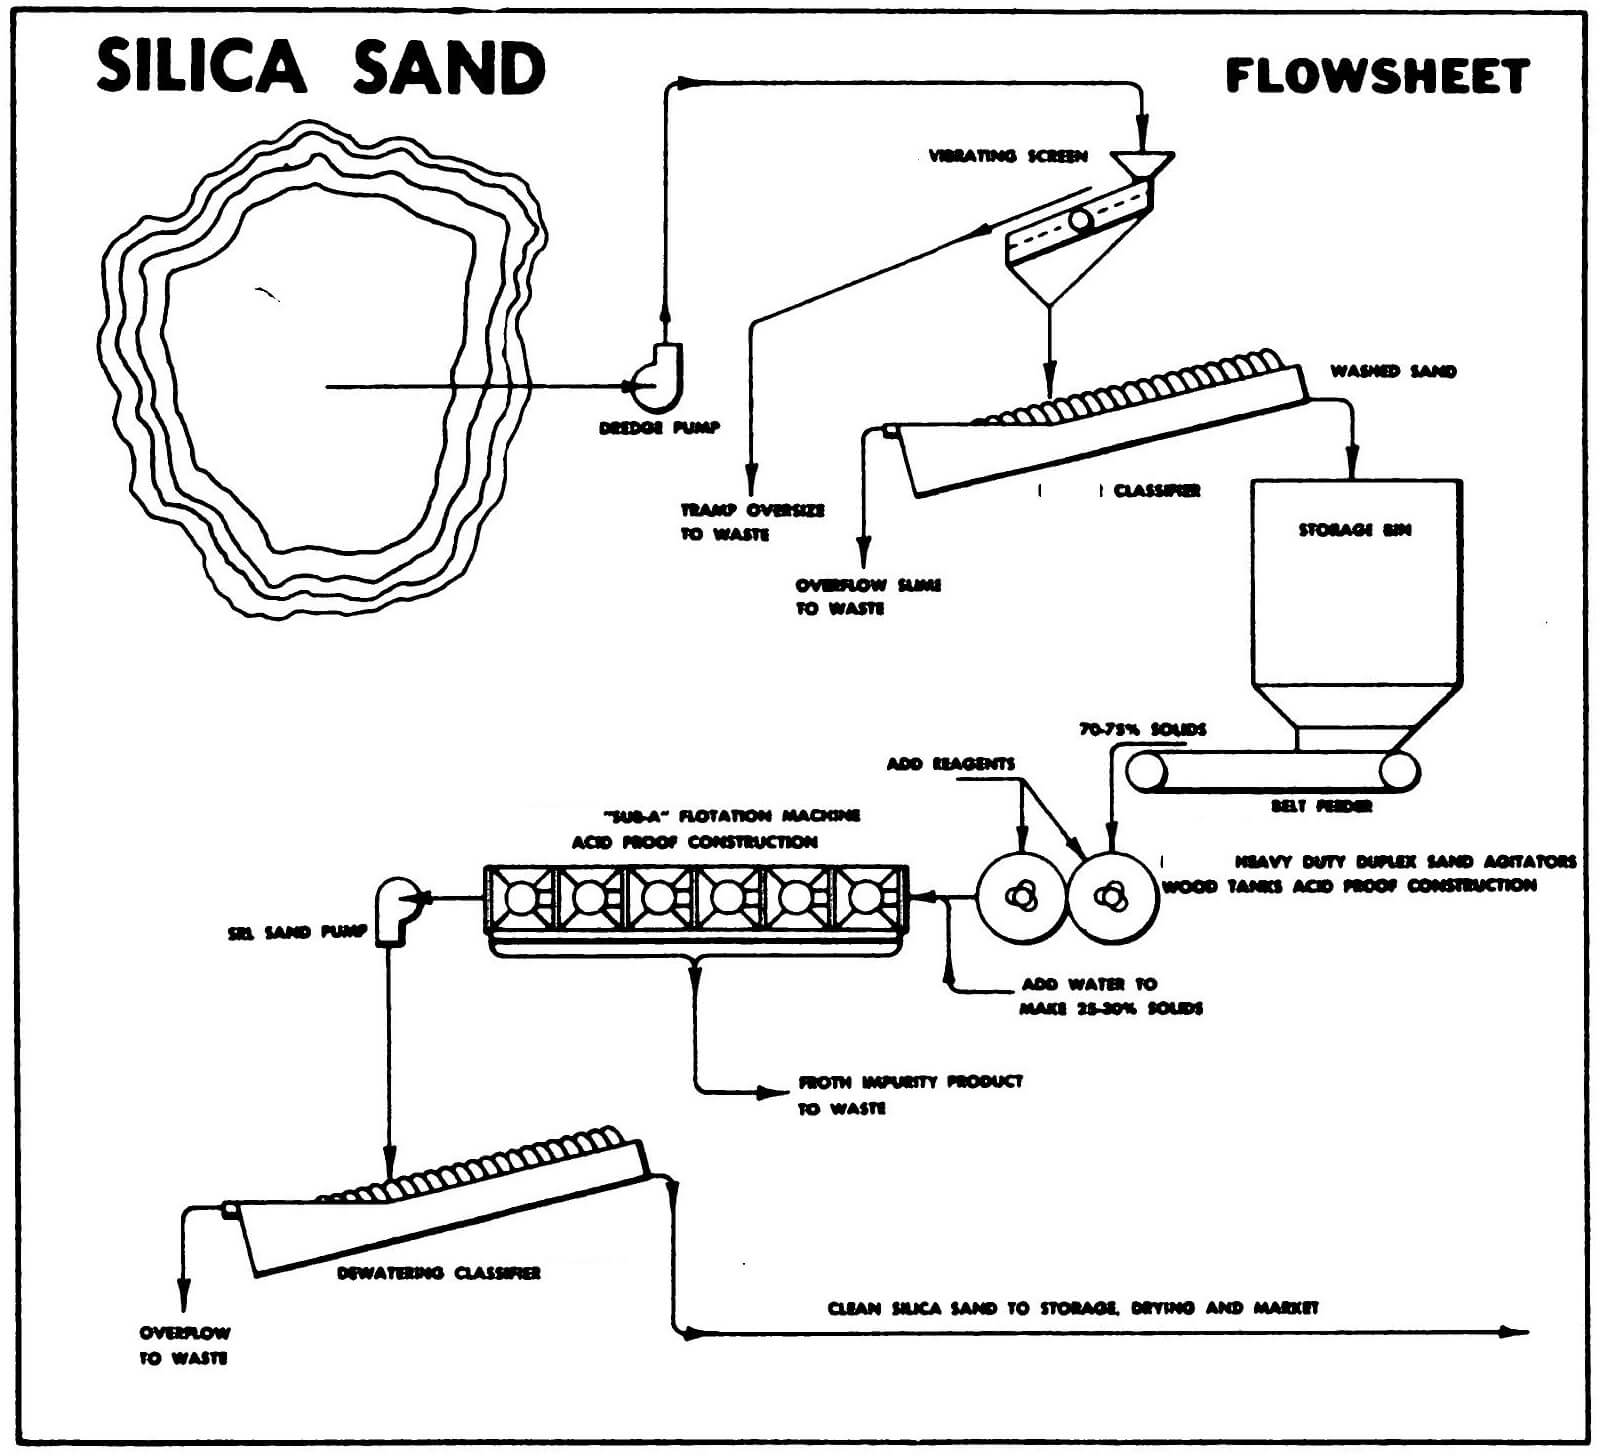 Silica Ore Extraction Process Flowsheet